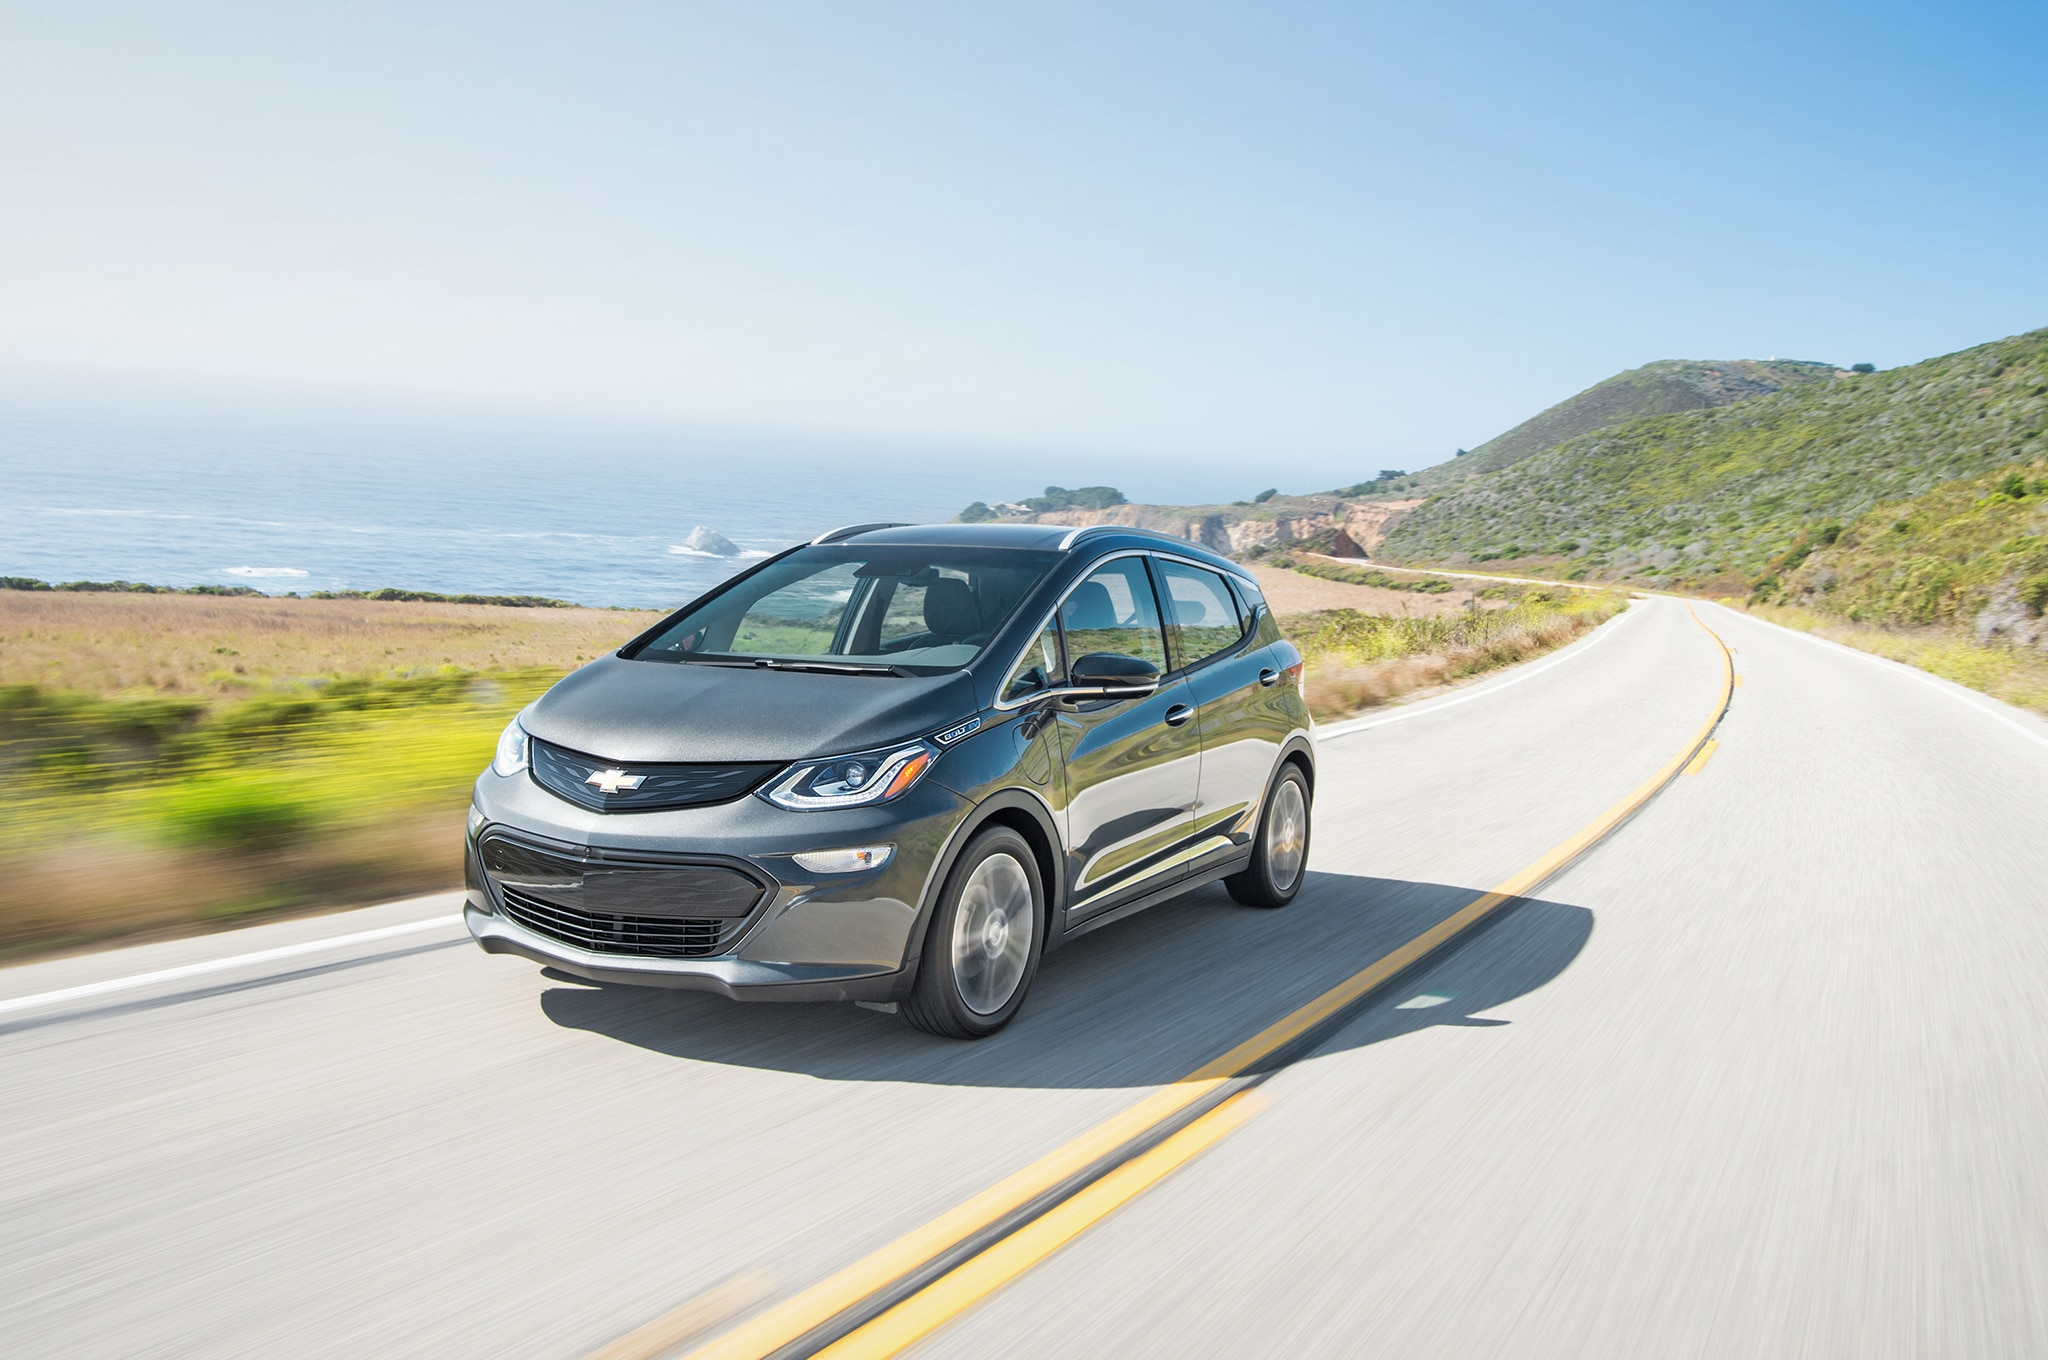 2017 Chevrolet Bolt EV Front Three Quarter In Motion 02